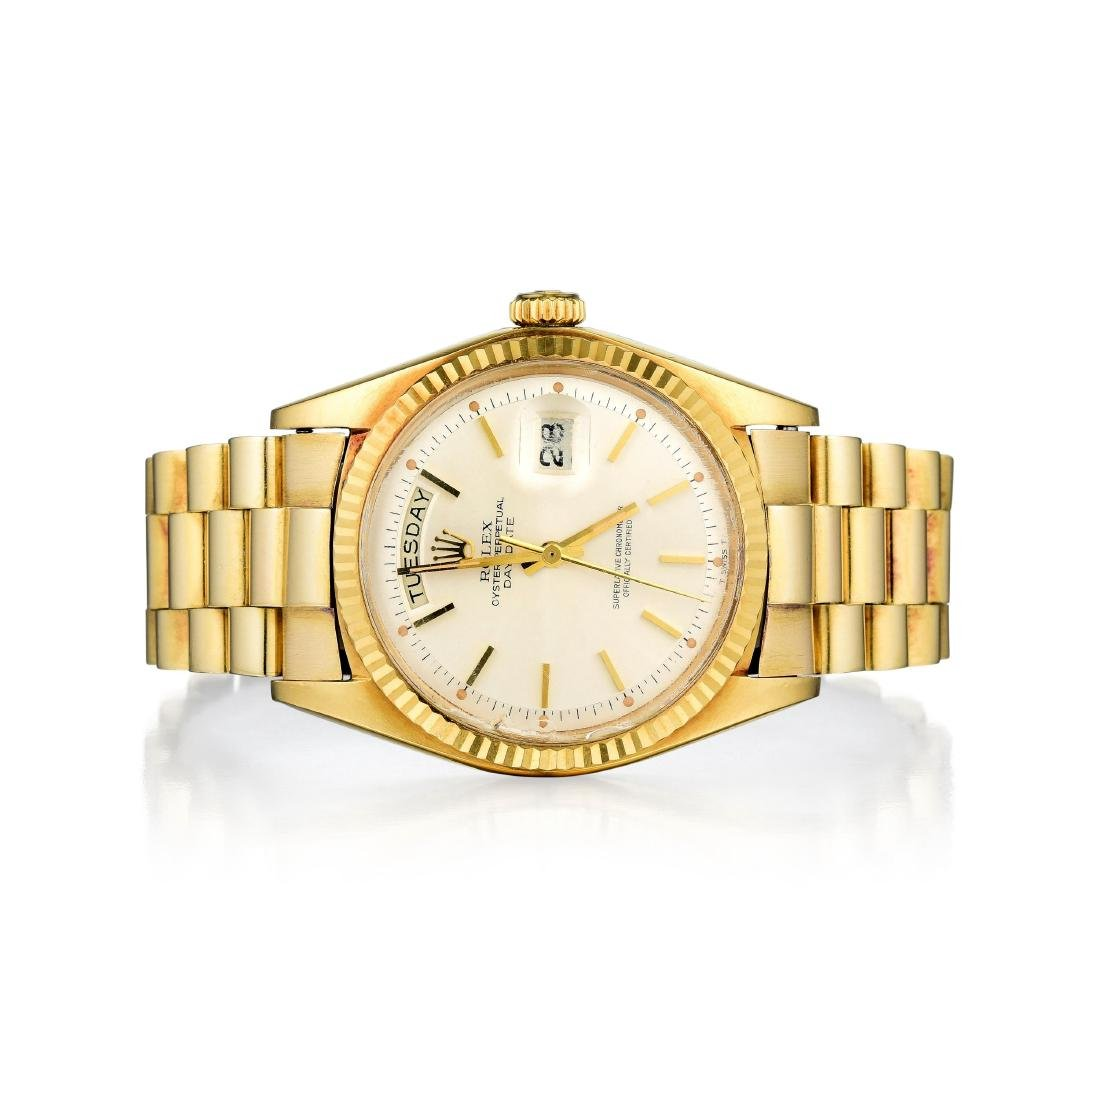 Rolex 18K Gold Gents Oyster Perpetual Day Date Watch,